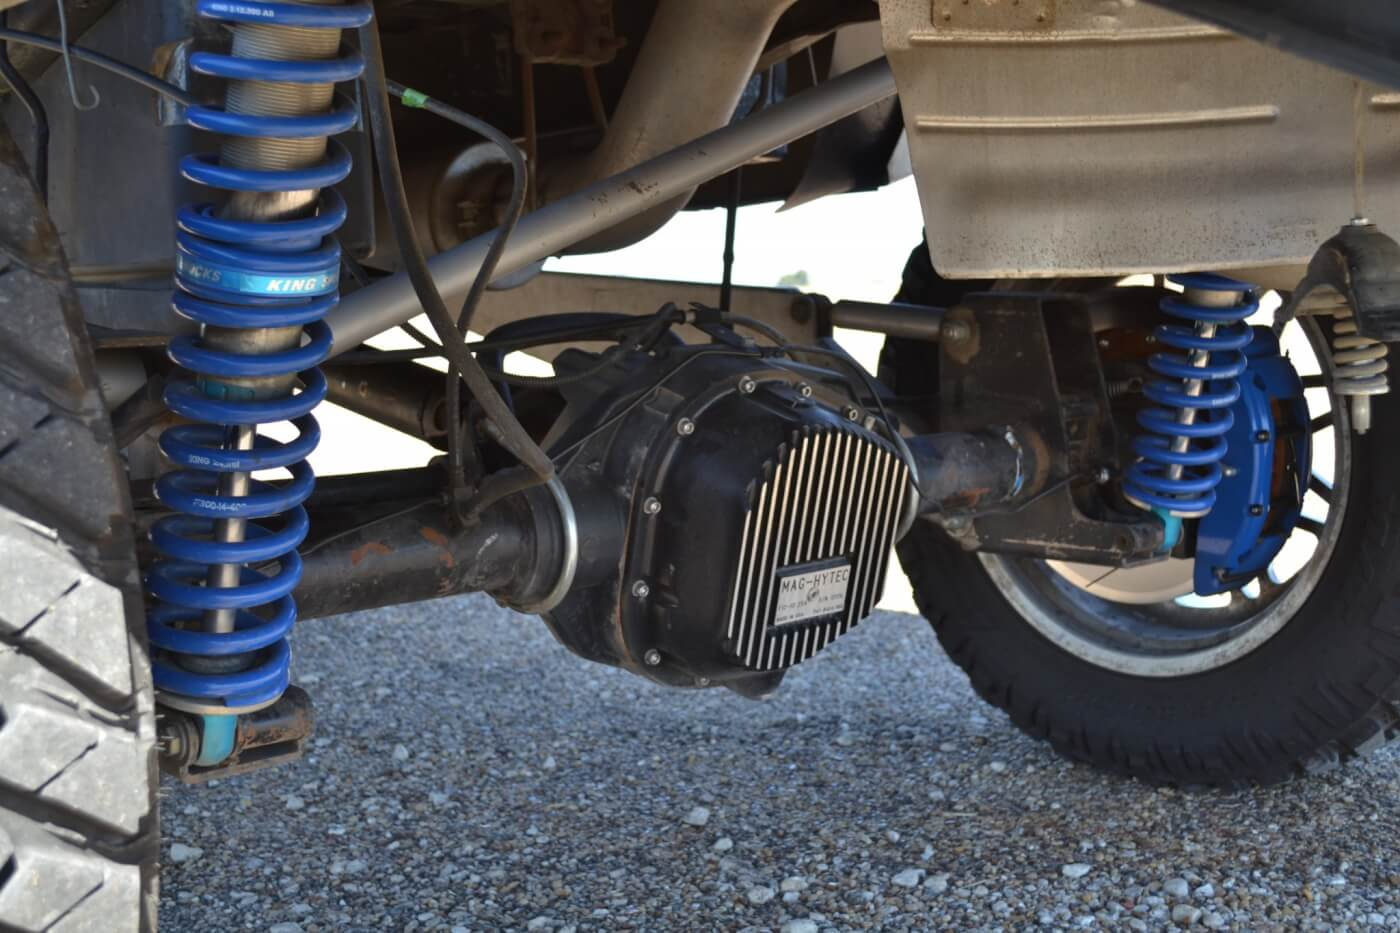 The rear suspension has been upgraded with 4.33 gears, a Mag-Hytec rear differential cover, and 300M RCV axle shafts. The rear shocks are 2.5-inch King coilovers that provide a whopping 12 inches of travel.